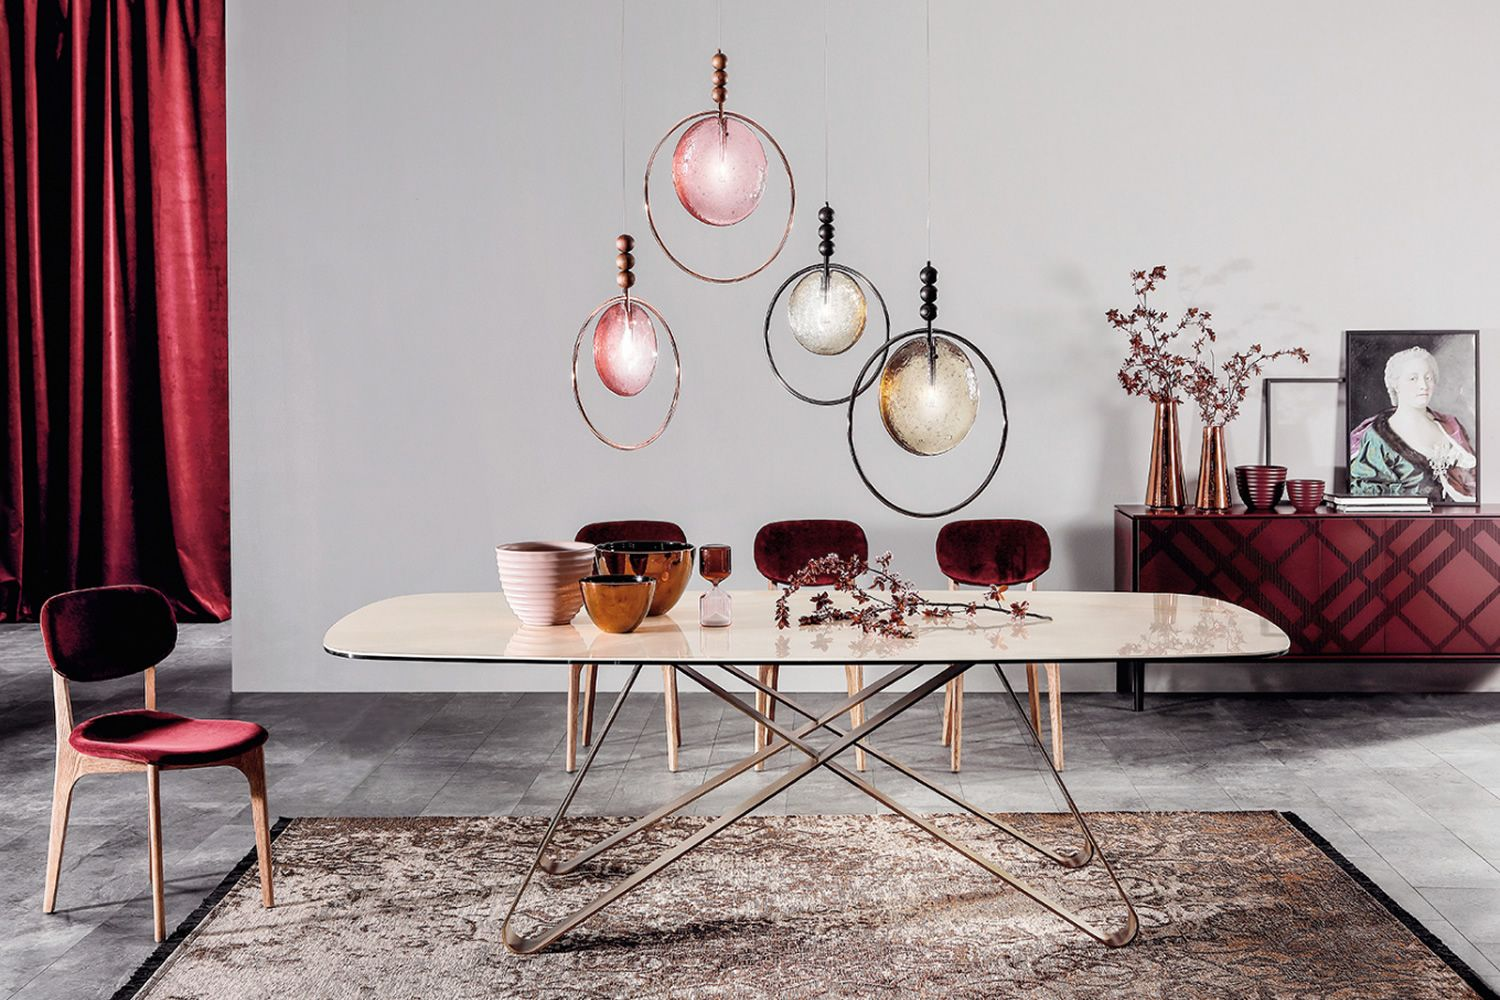 Suspension lamp with structure in metal, glass and wood